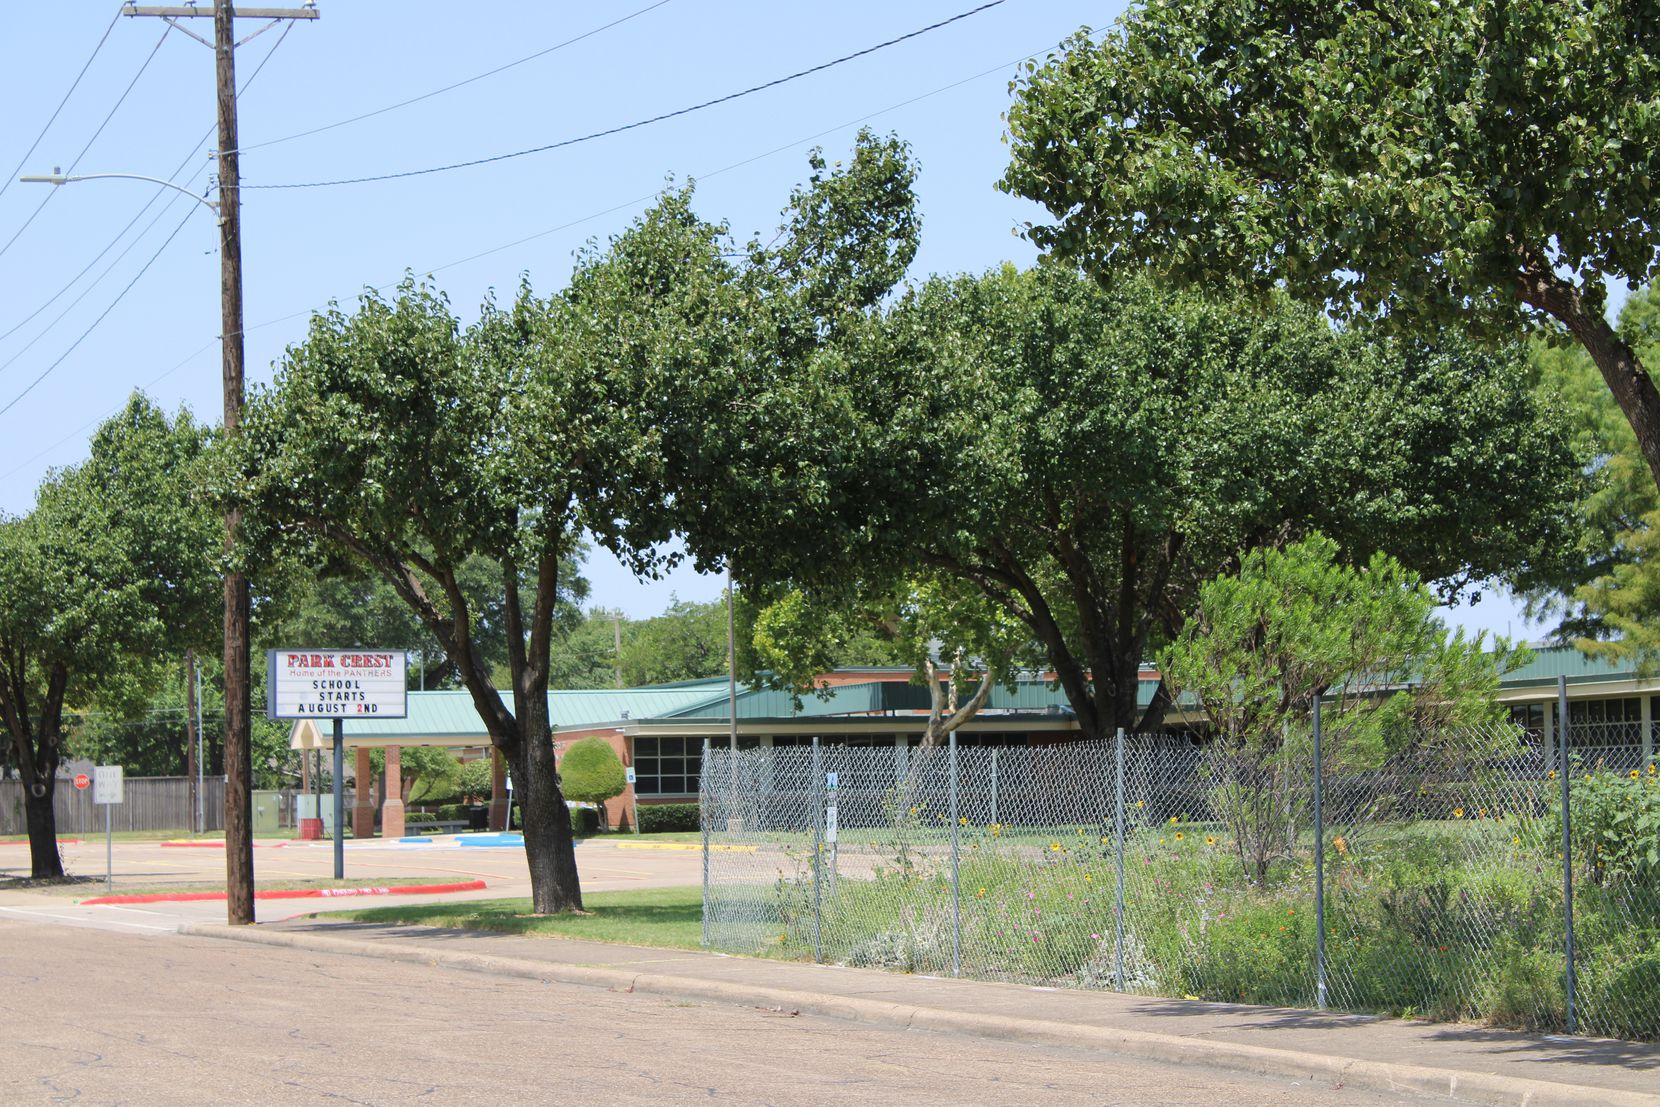 A company placed fencing around a garden at Park Crest Elementary School on July 23.